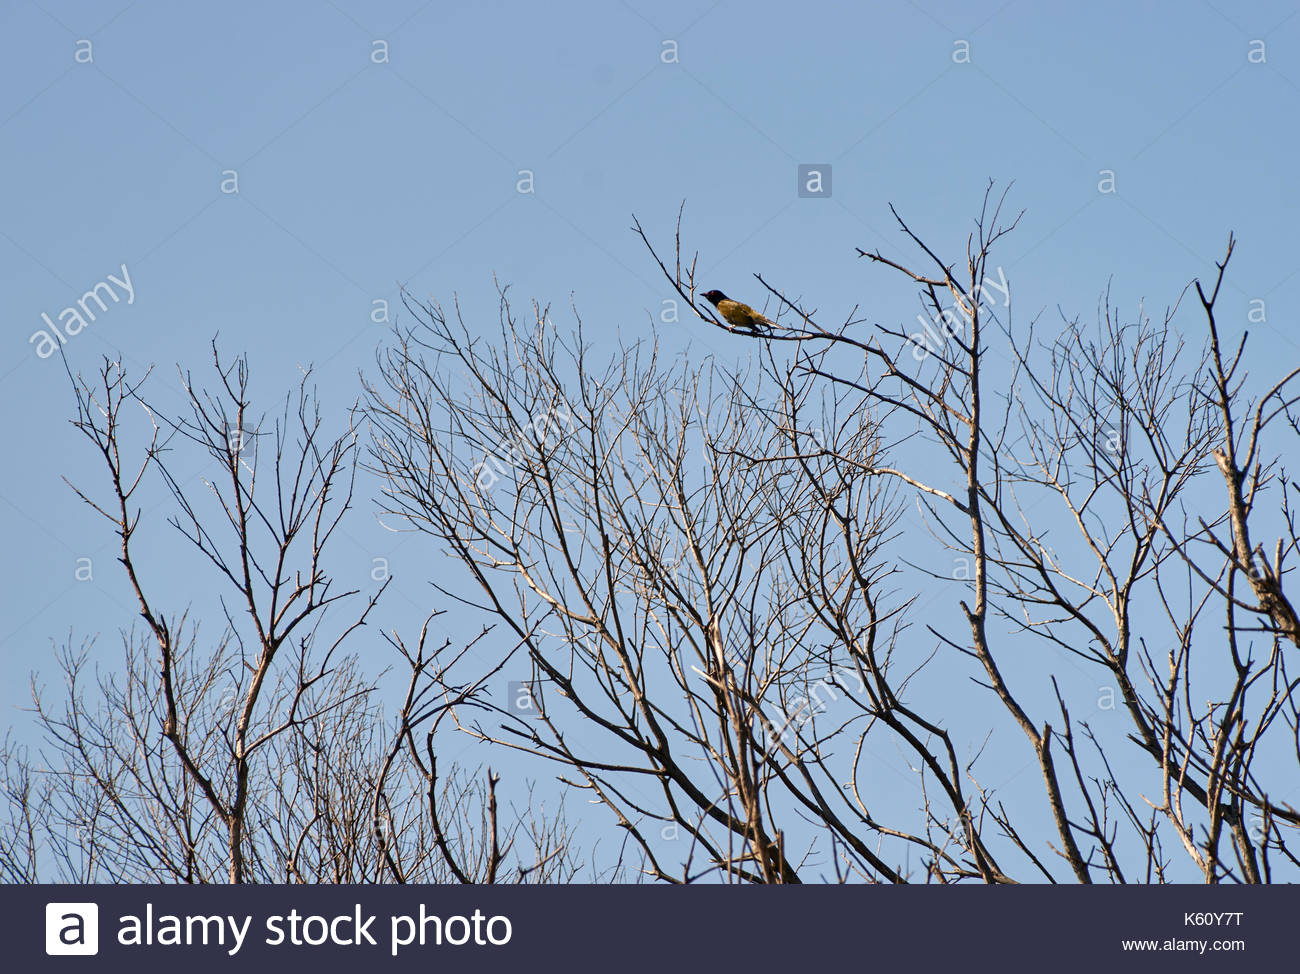 An Australasian figbird(Sphecotheres vieilloti) perched on the highest branch of a thicket of leafless bare trees, with a pale blue-sky background. - Stock Image